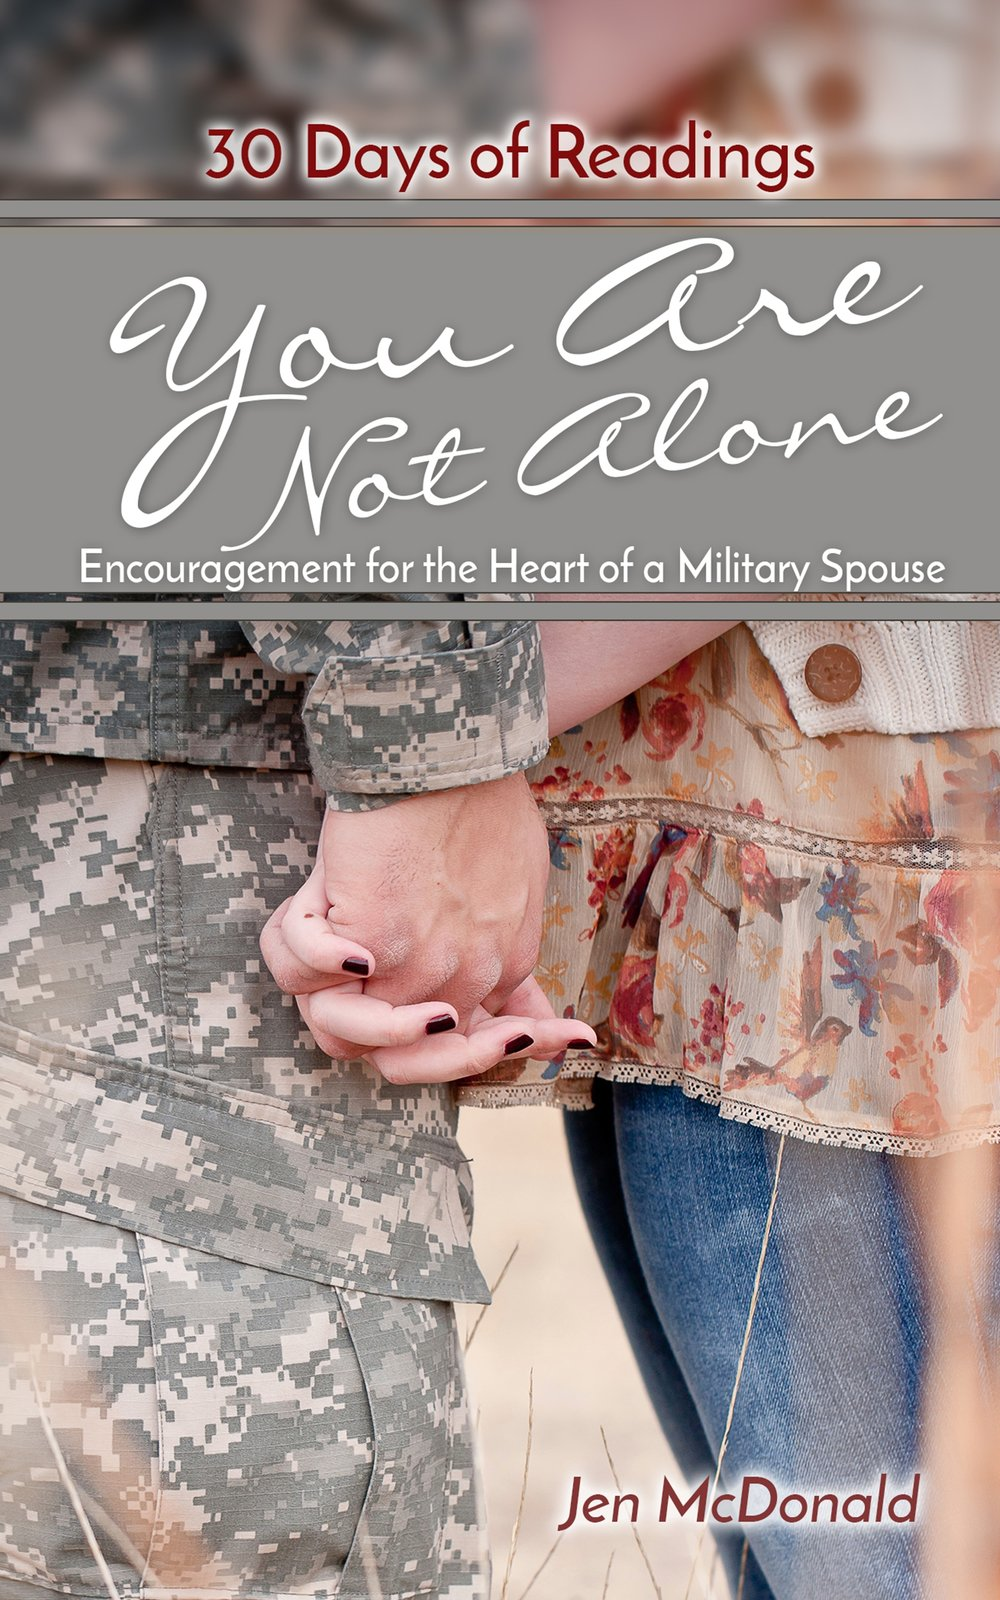 You are not alone cover (1).jpg